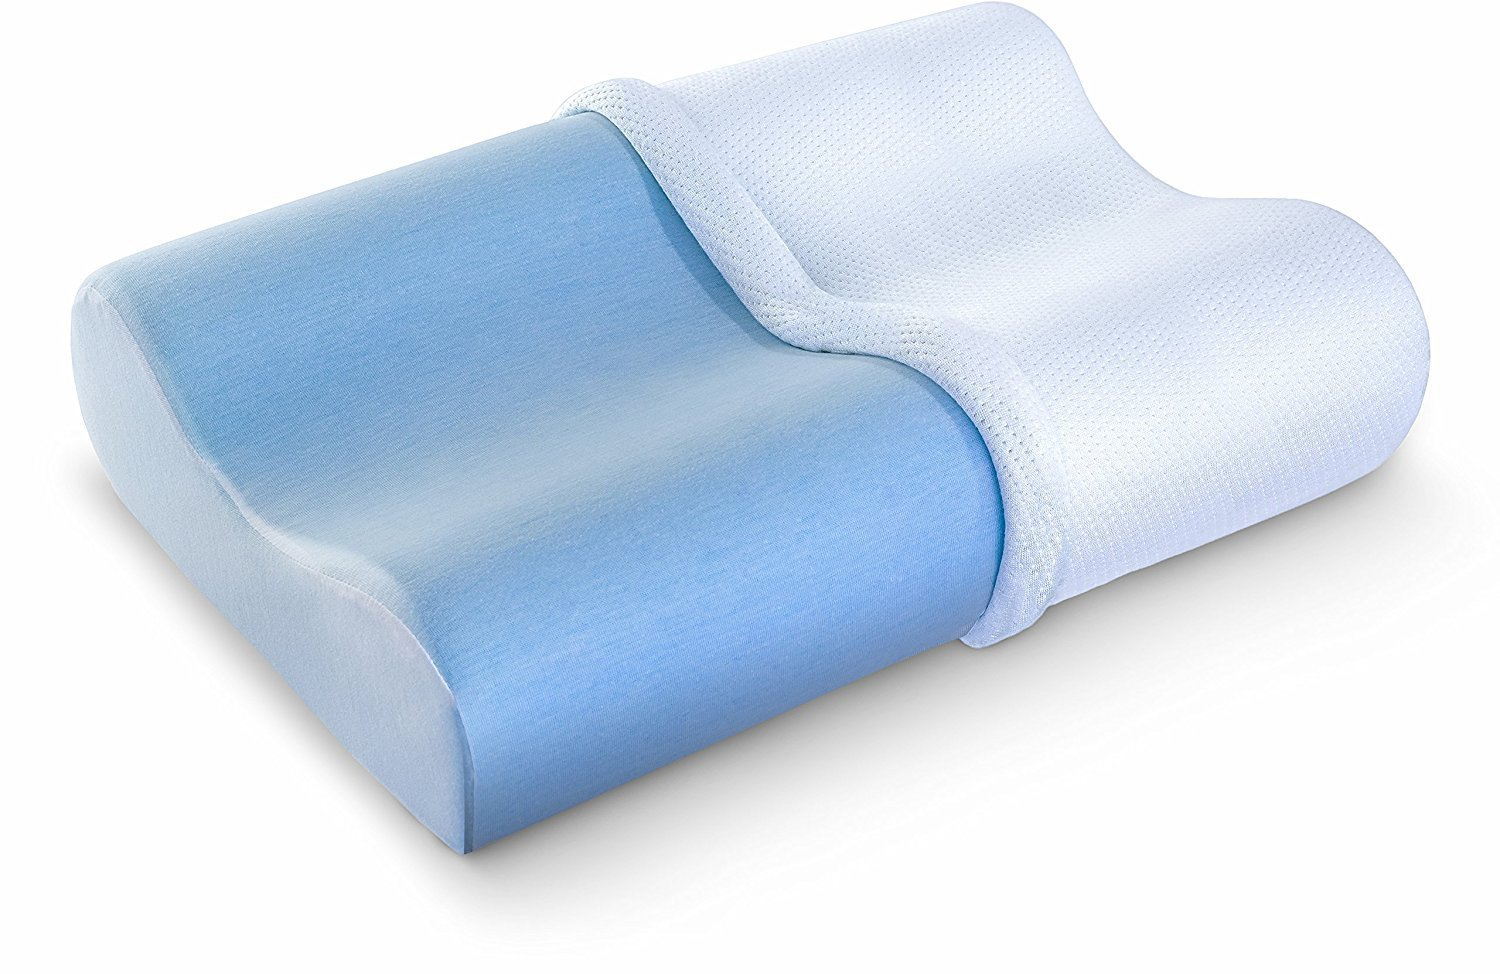 sofa support bed bath and beyond corner with chaise recliner cooling pillow home furniture design